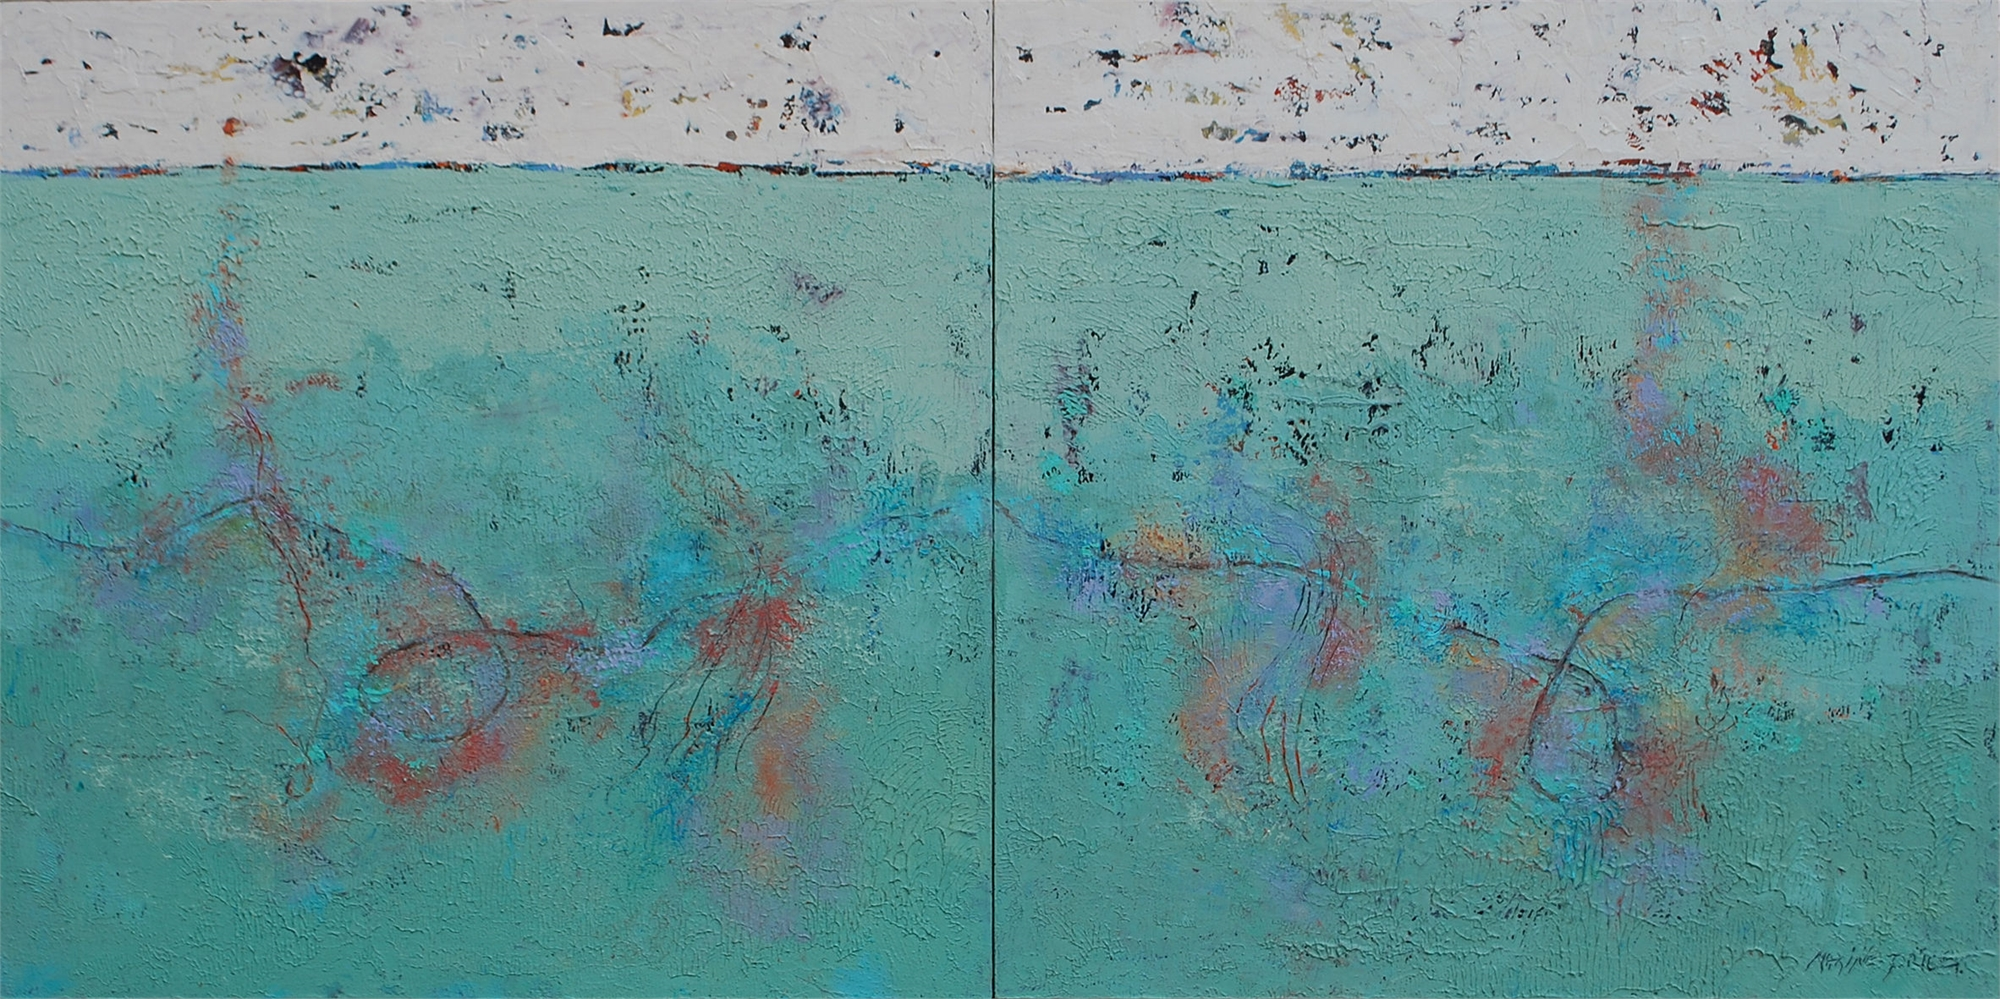 Drawing Conclusions (diptych) by Maxine Price